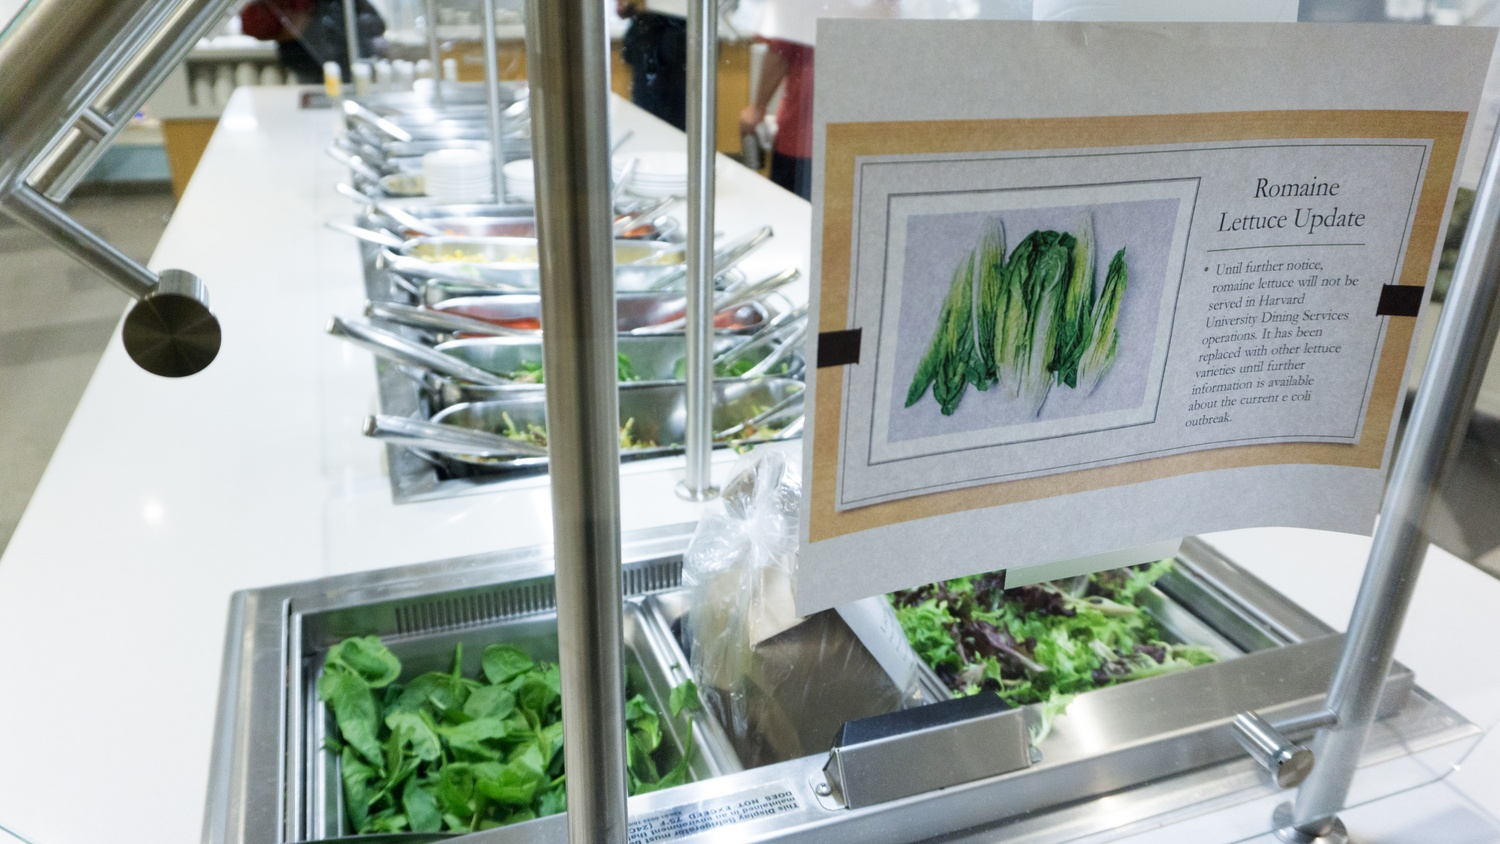 Harvard Removes Romaine Lettuce From Dining Halls Following E Coli